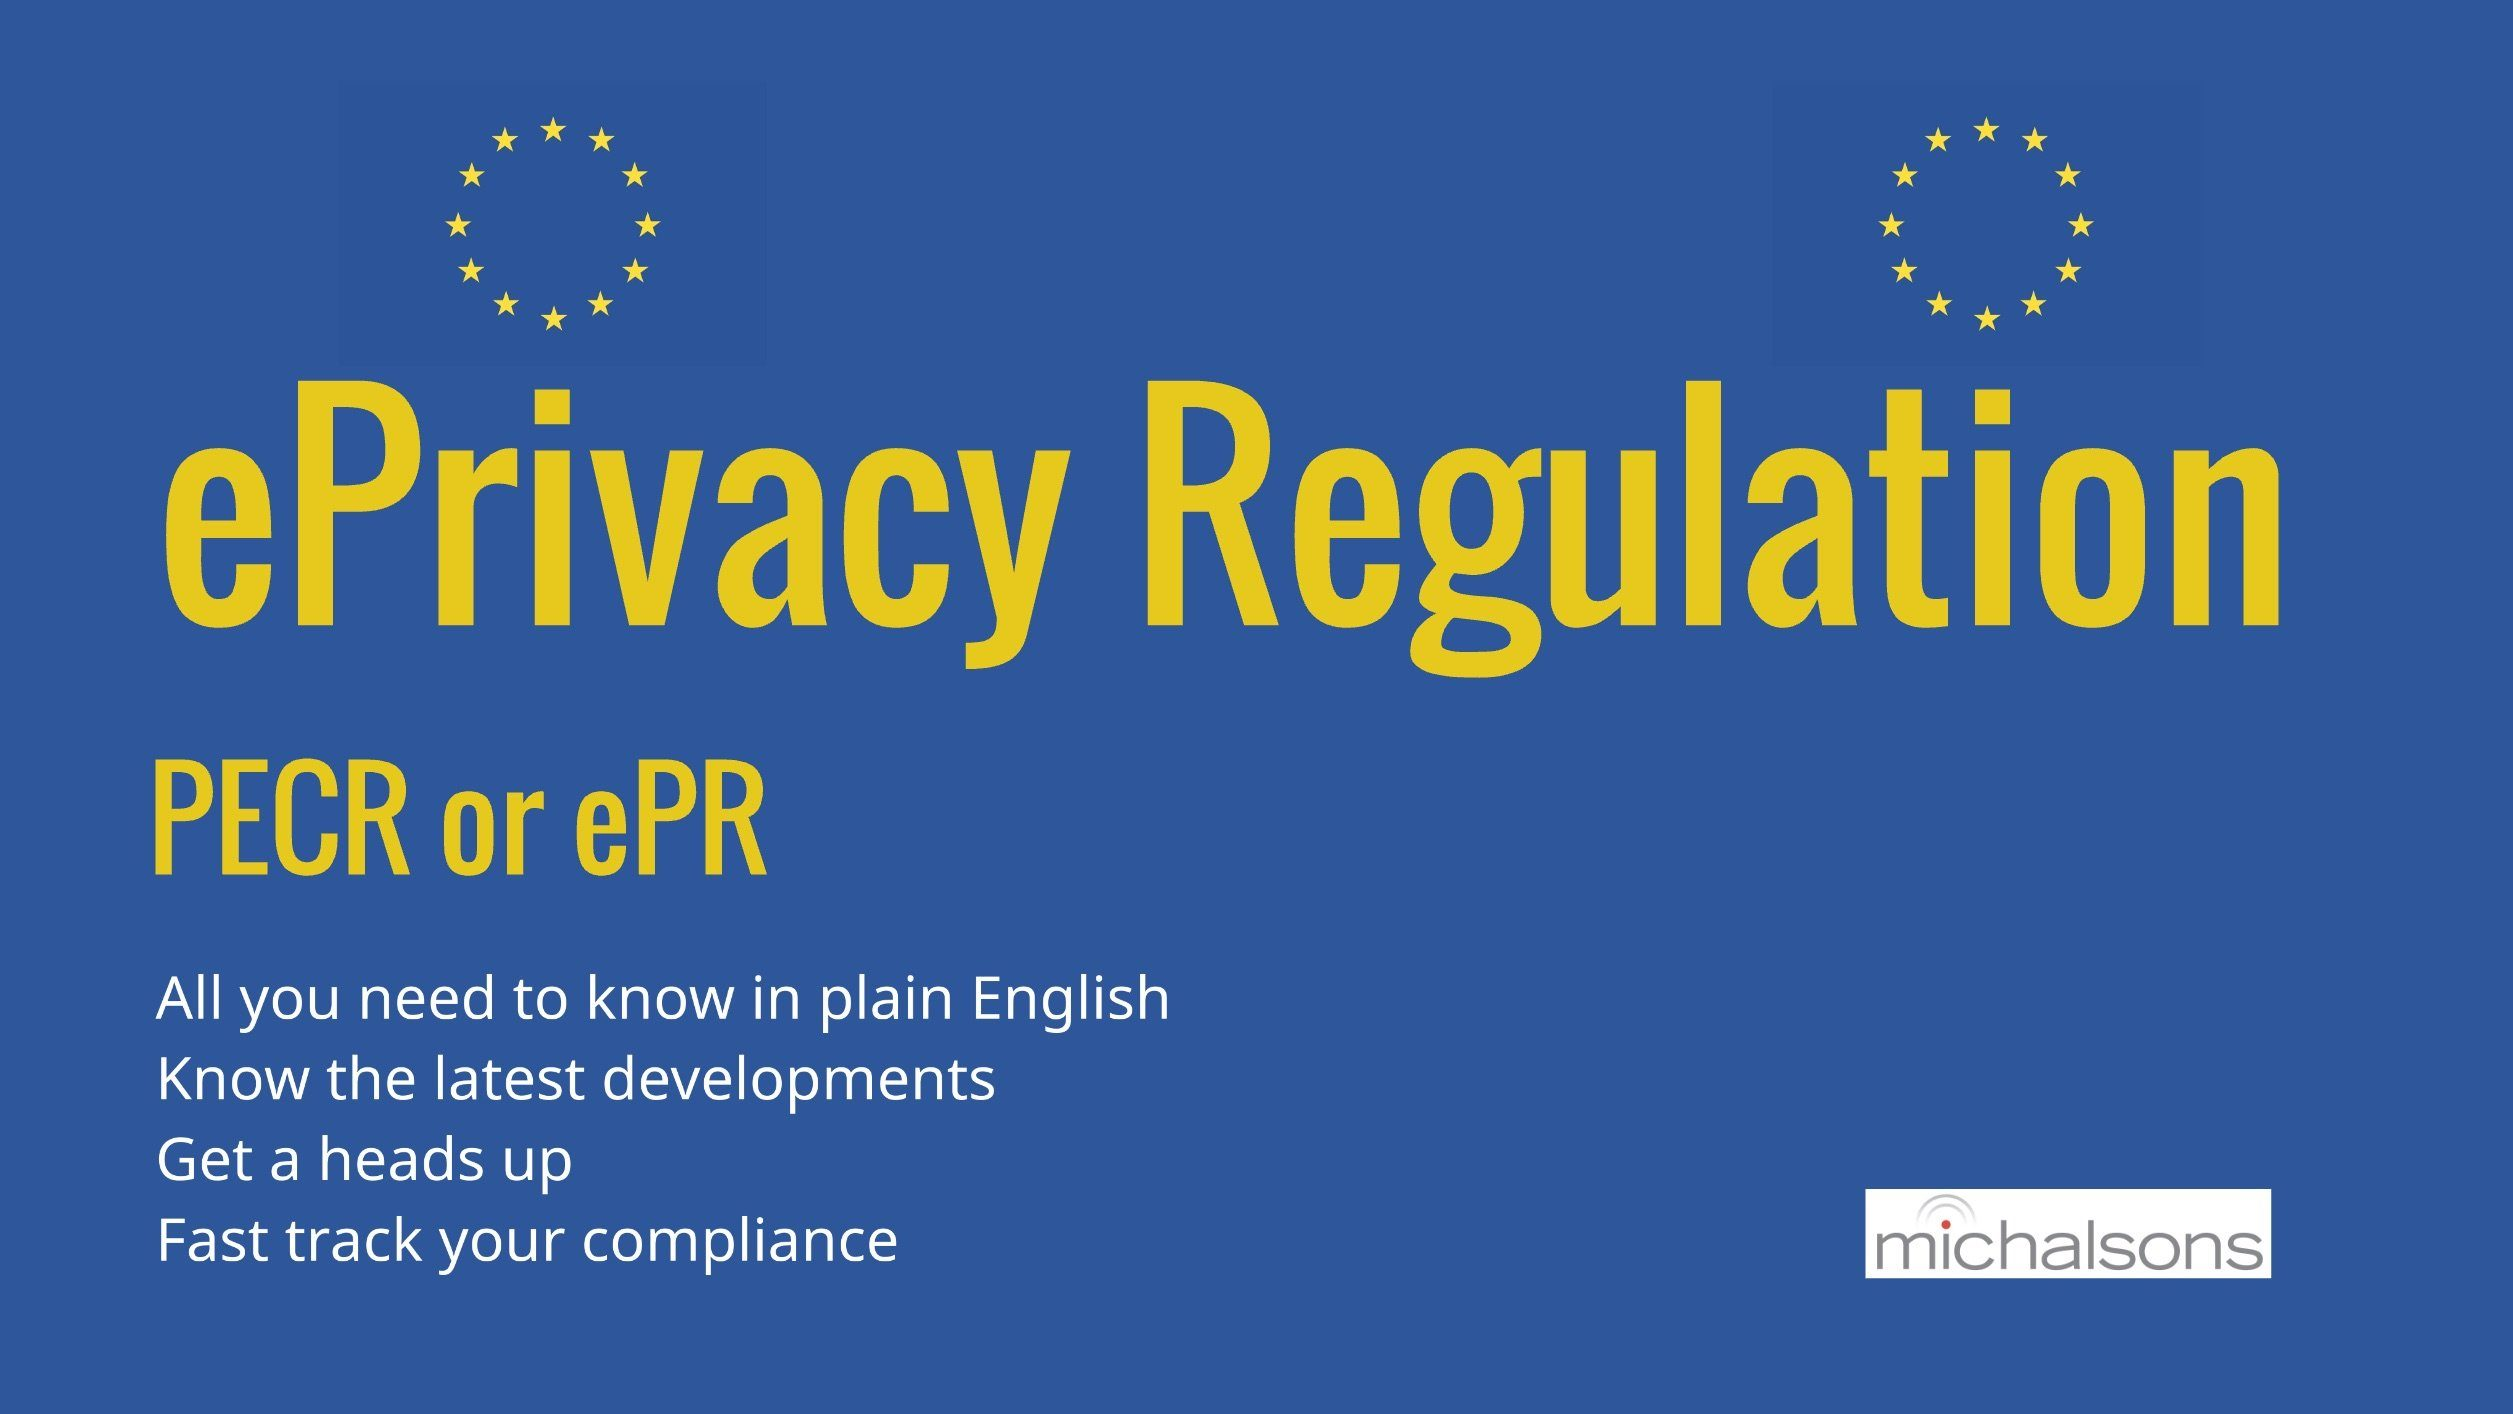 ePrivacy Regulation on Privacy and Electronic Communications PECR or ePR